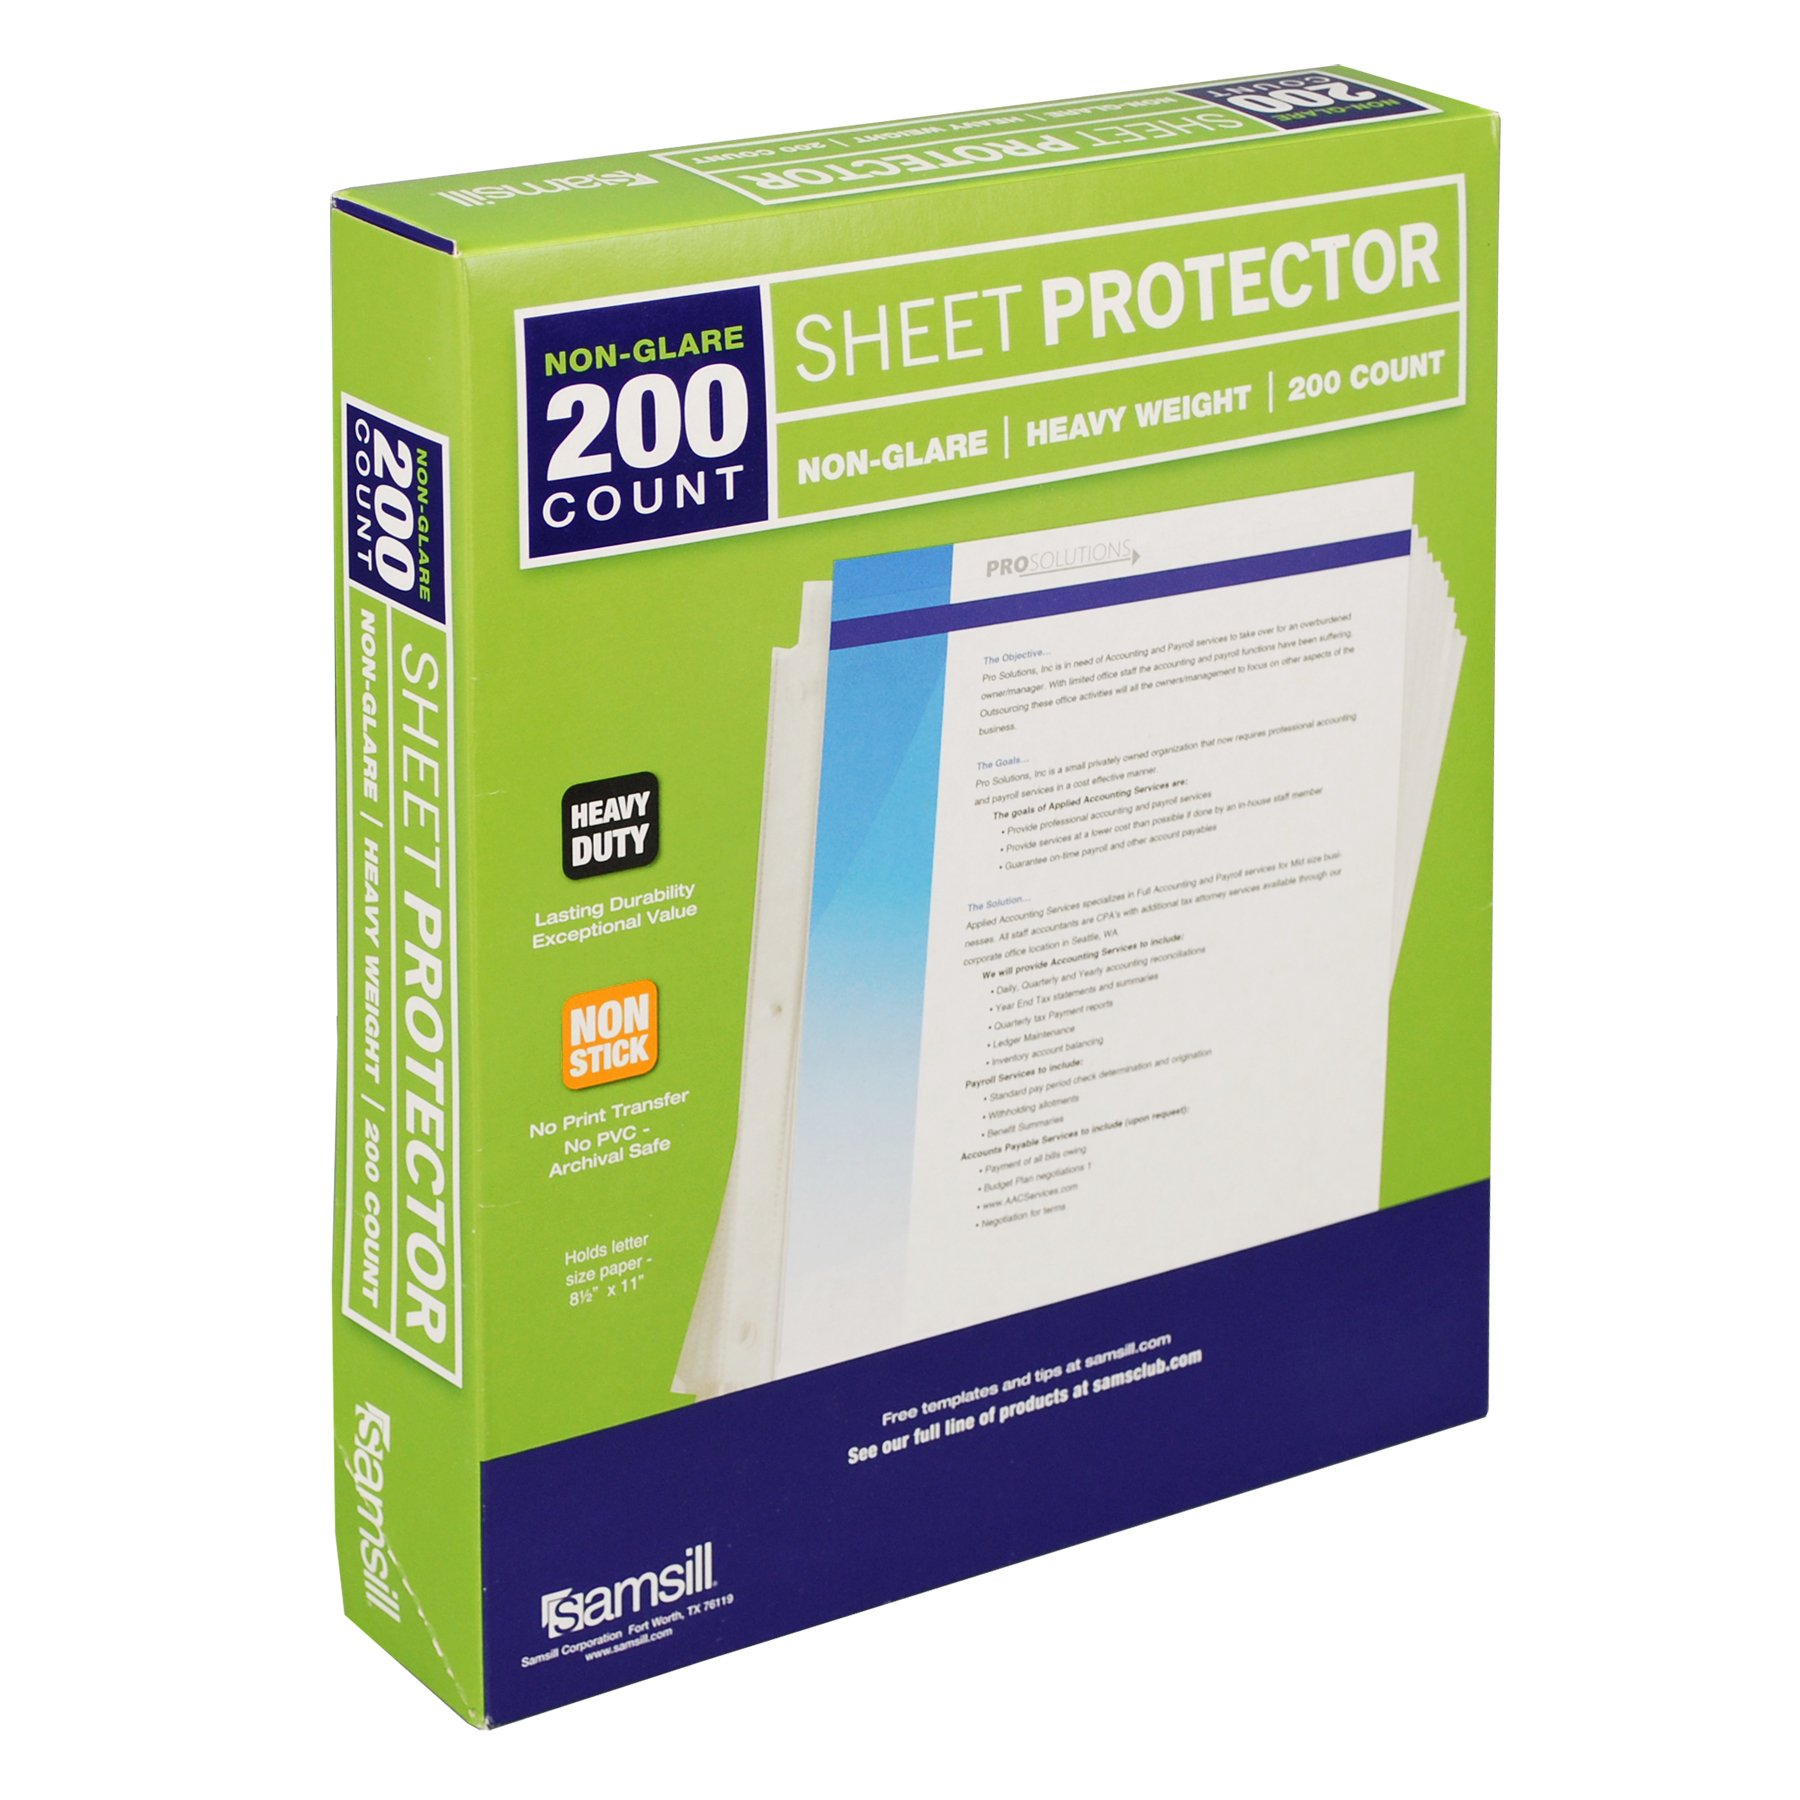 Samsill 200 Non-Glare Heavyweight Sheet Protectors, Reinforced 3 Hole Design Plastic Page Protectors, Archival Safe, Top Load for 8.5 x 11 Inch Sheets, Box of 200 by Samsill